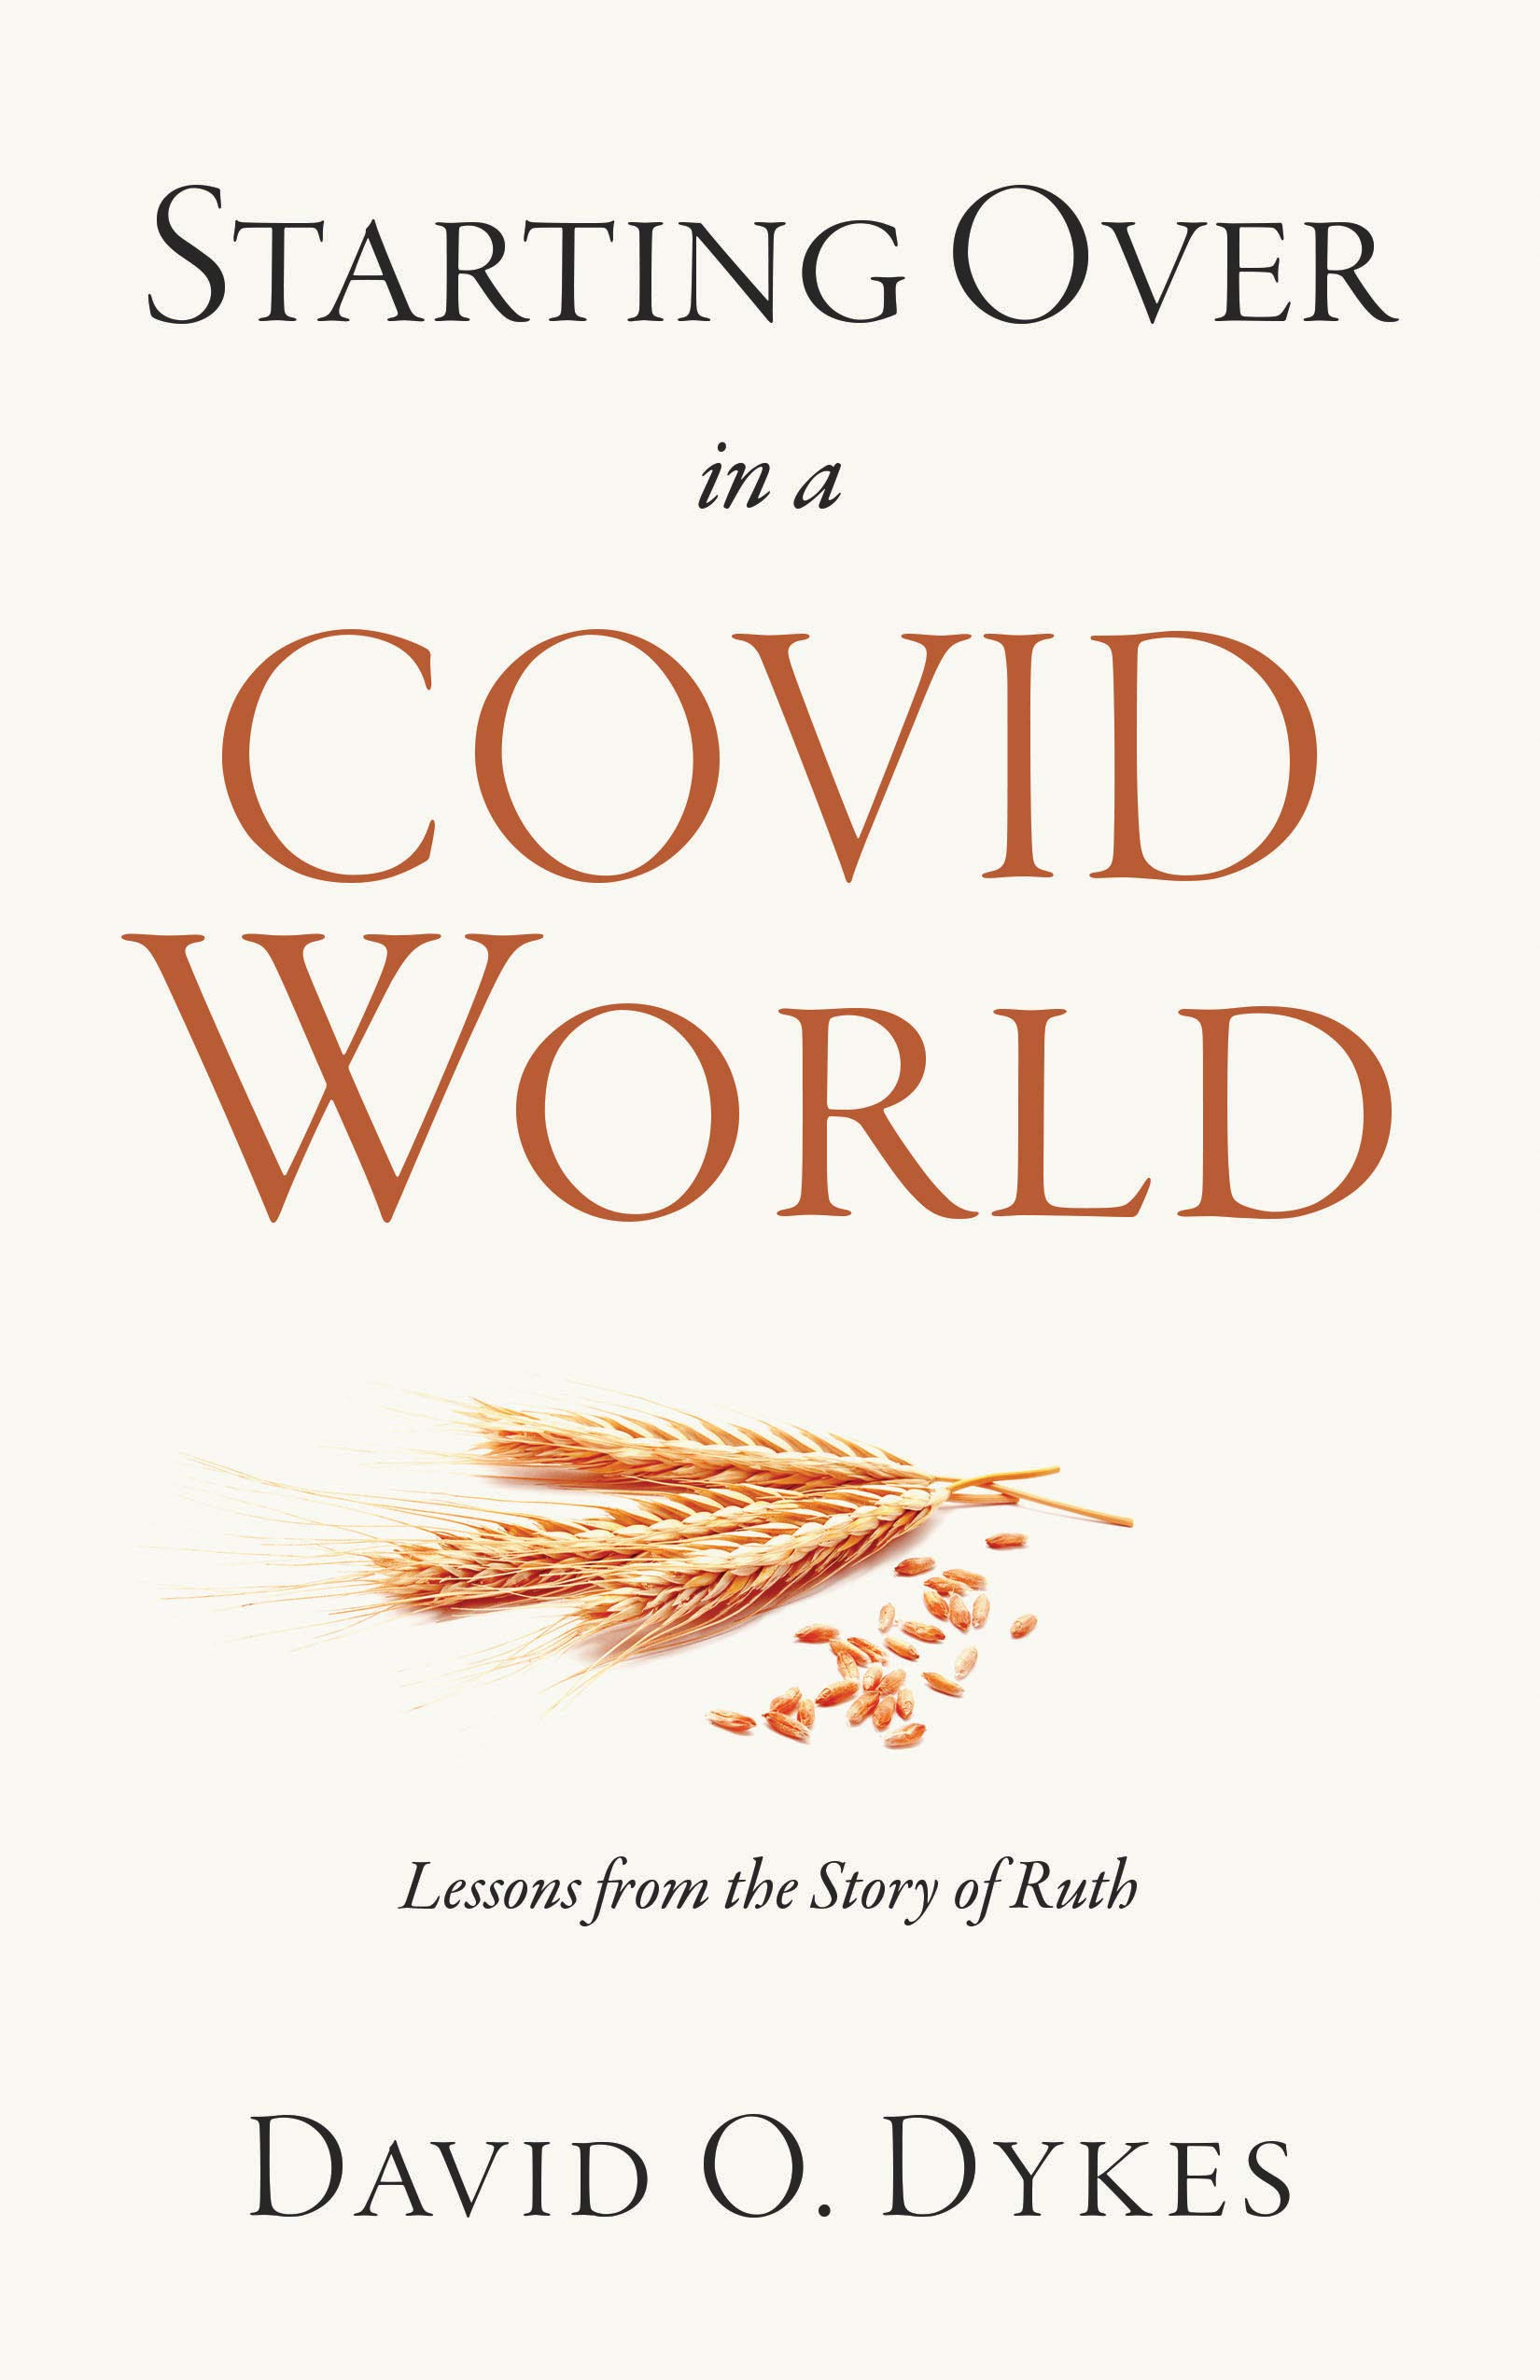 Starting over in a COVID World: Lessons from the Story of Ruth